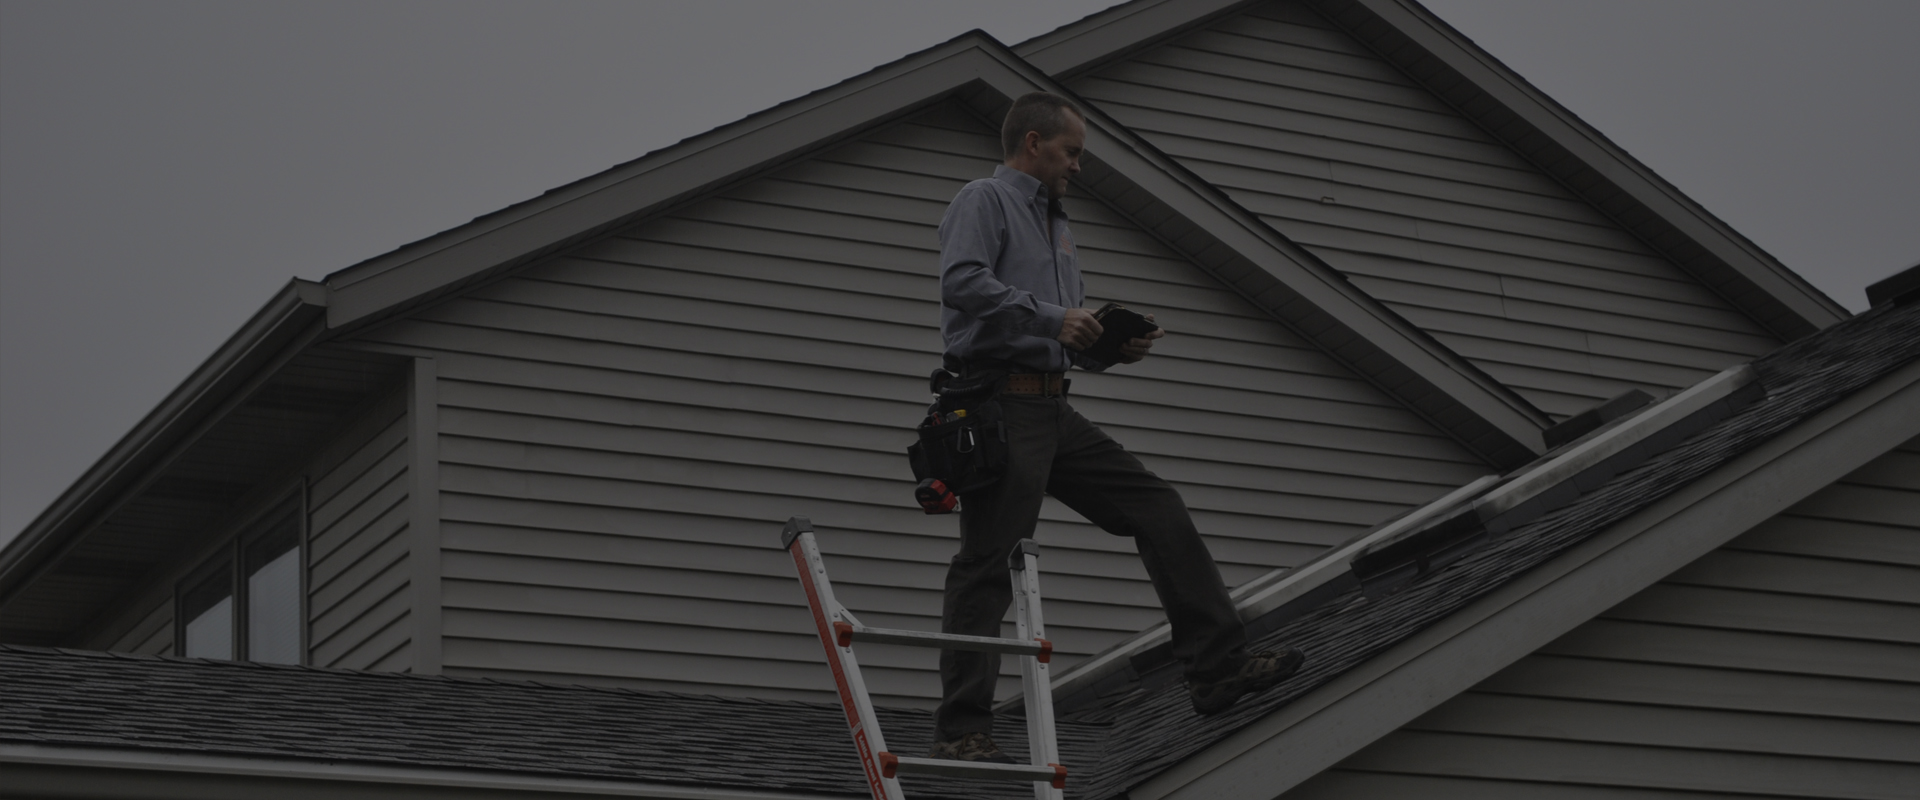 Scott inspecting roof